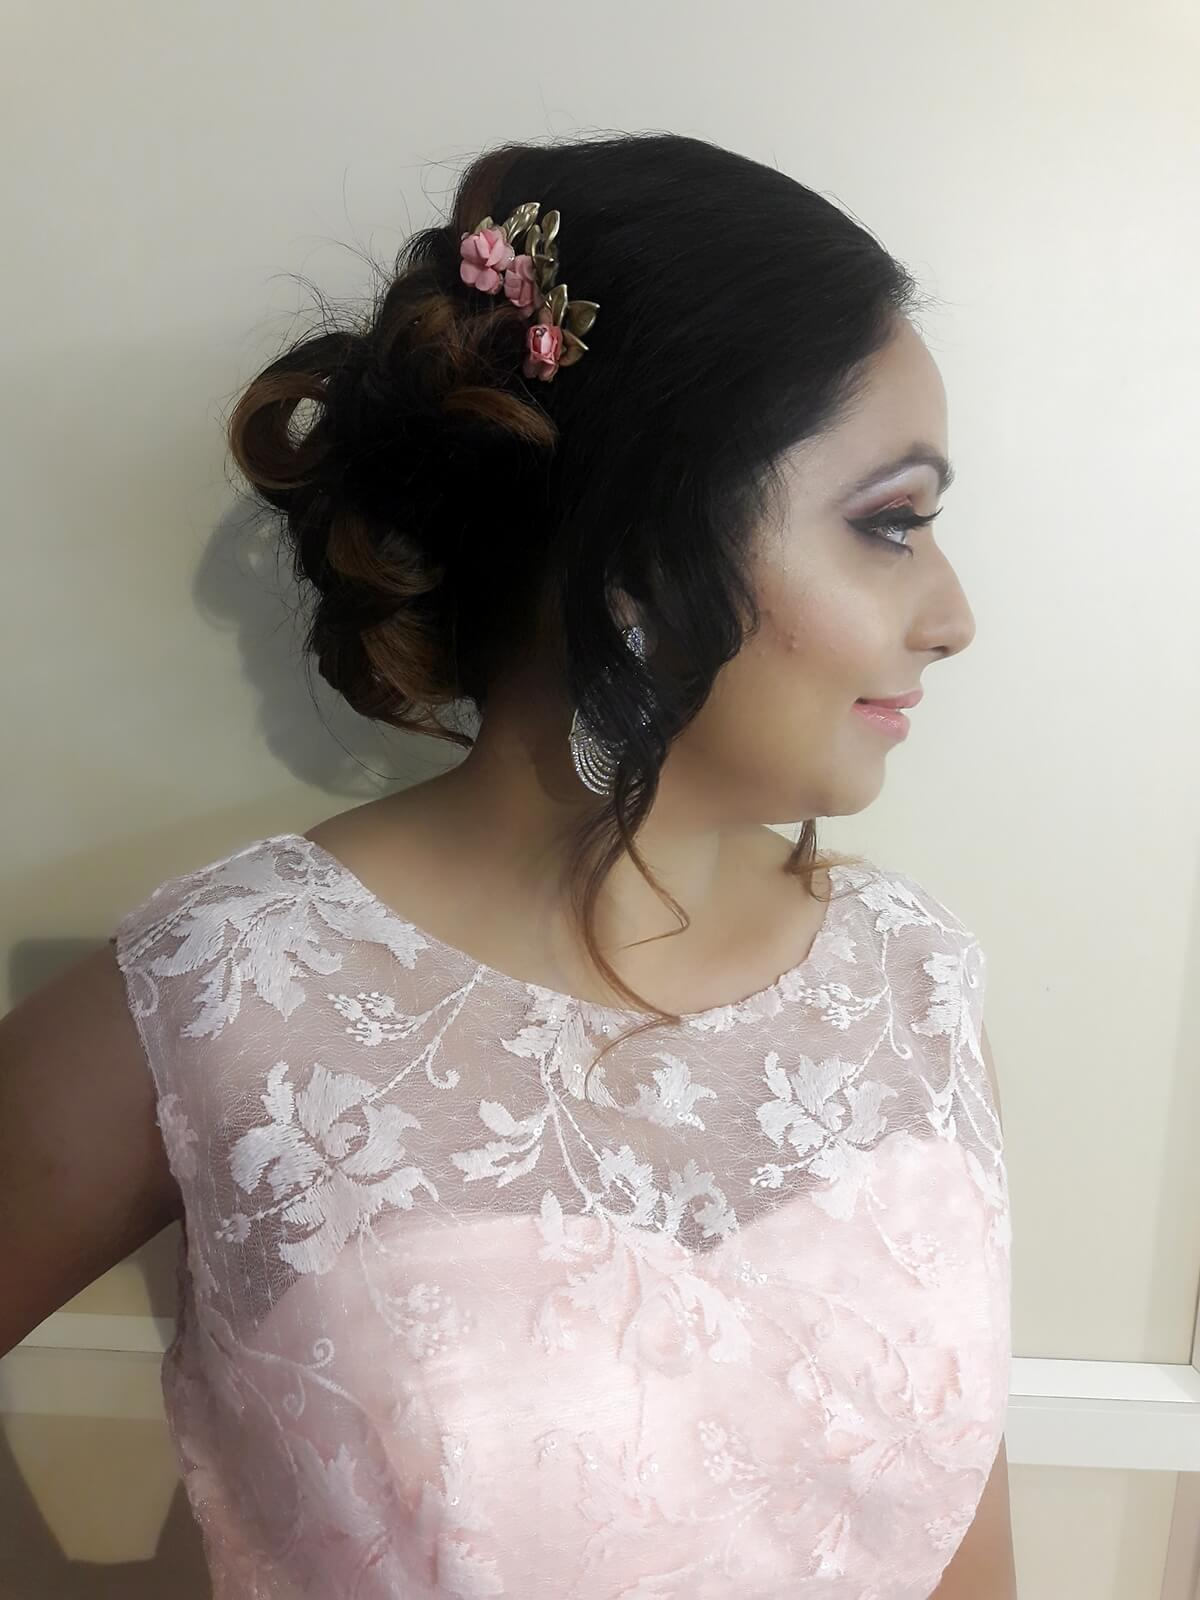 Cocktail Party Looks by Ruchika Bhatia